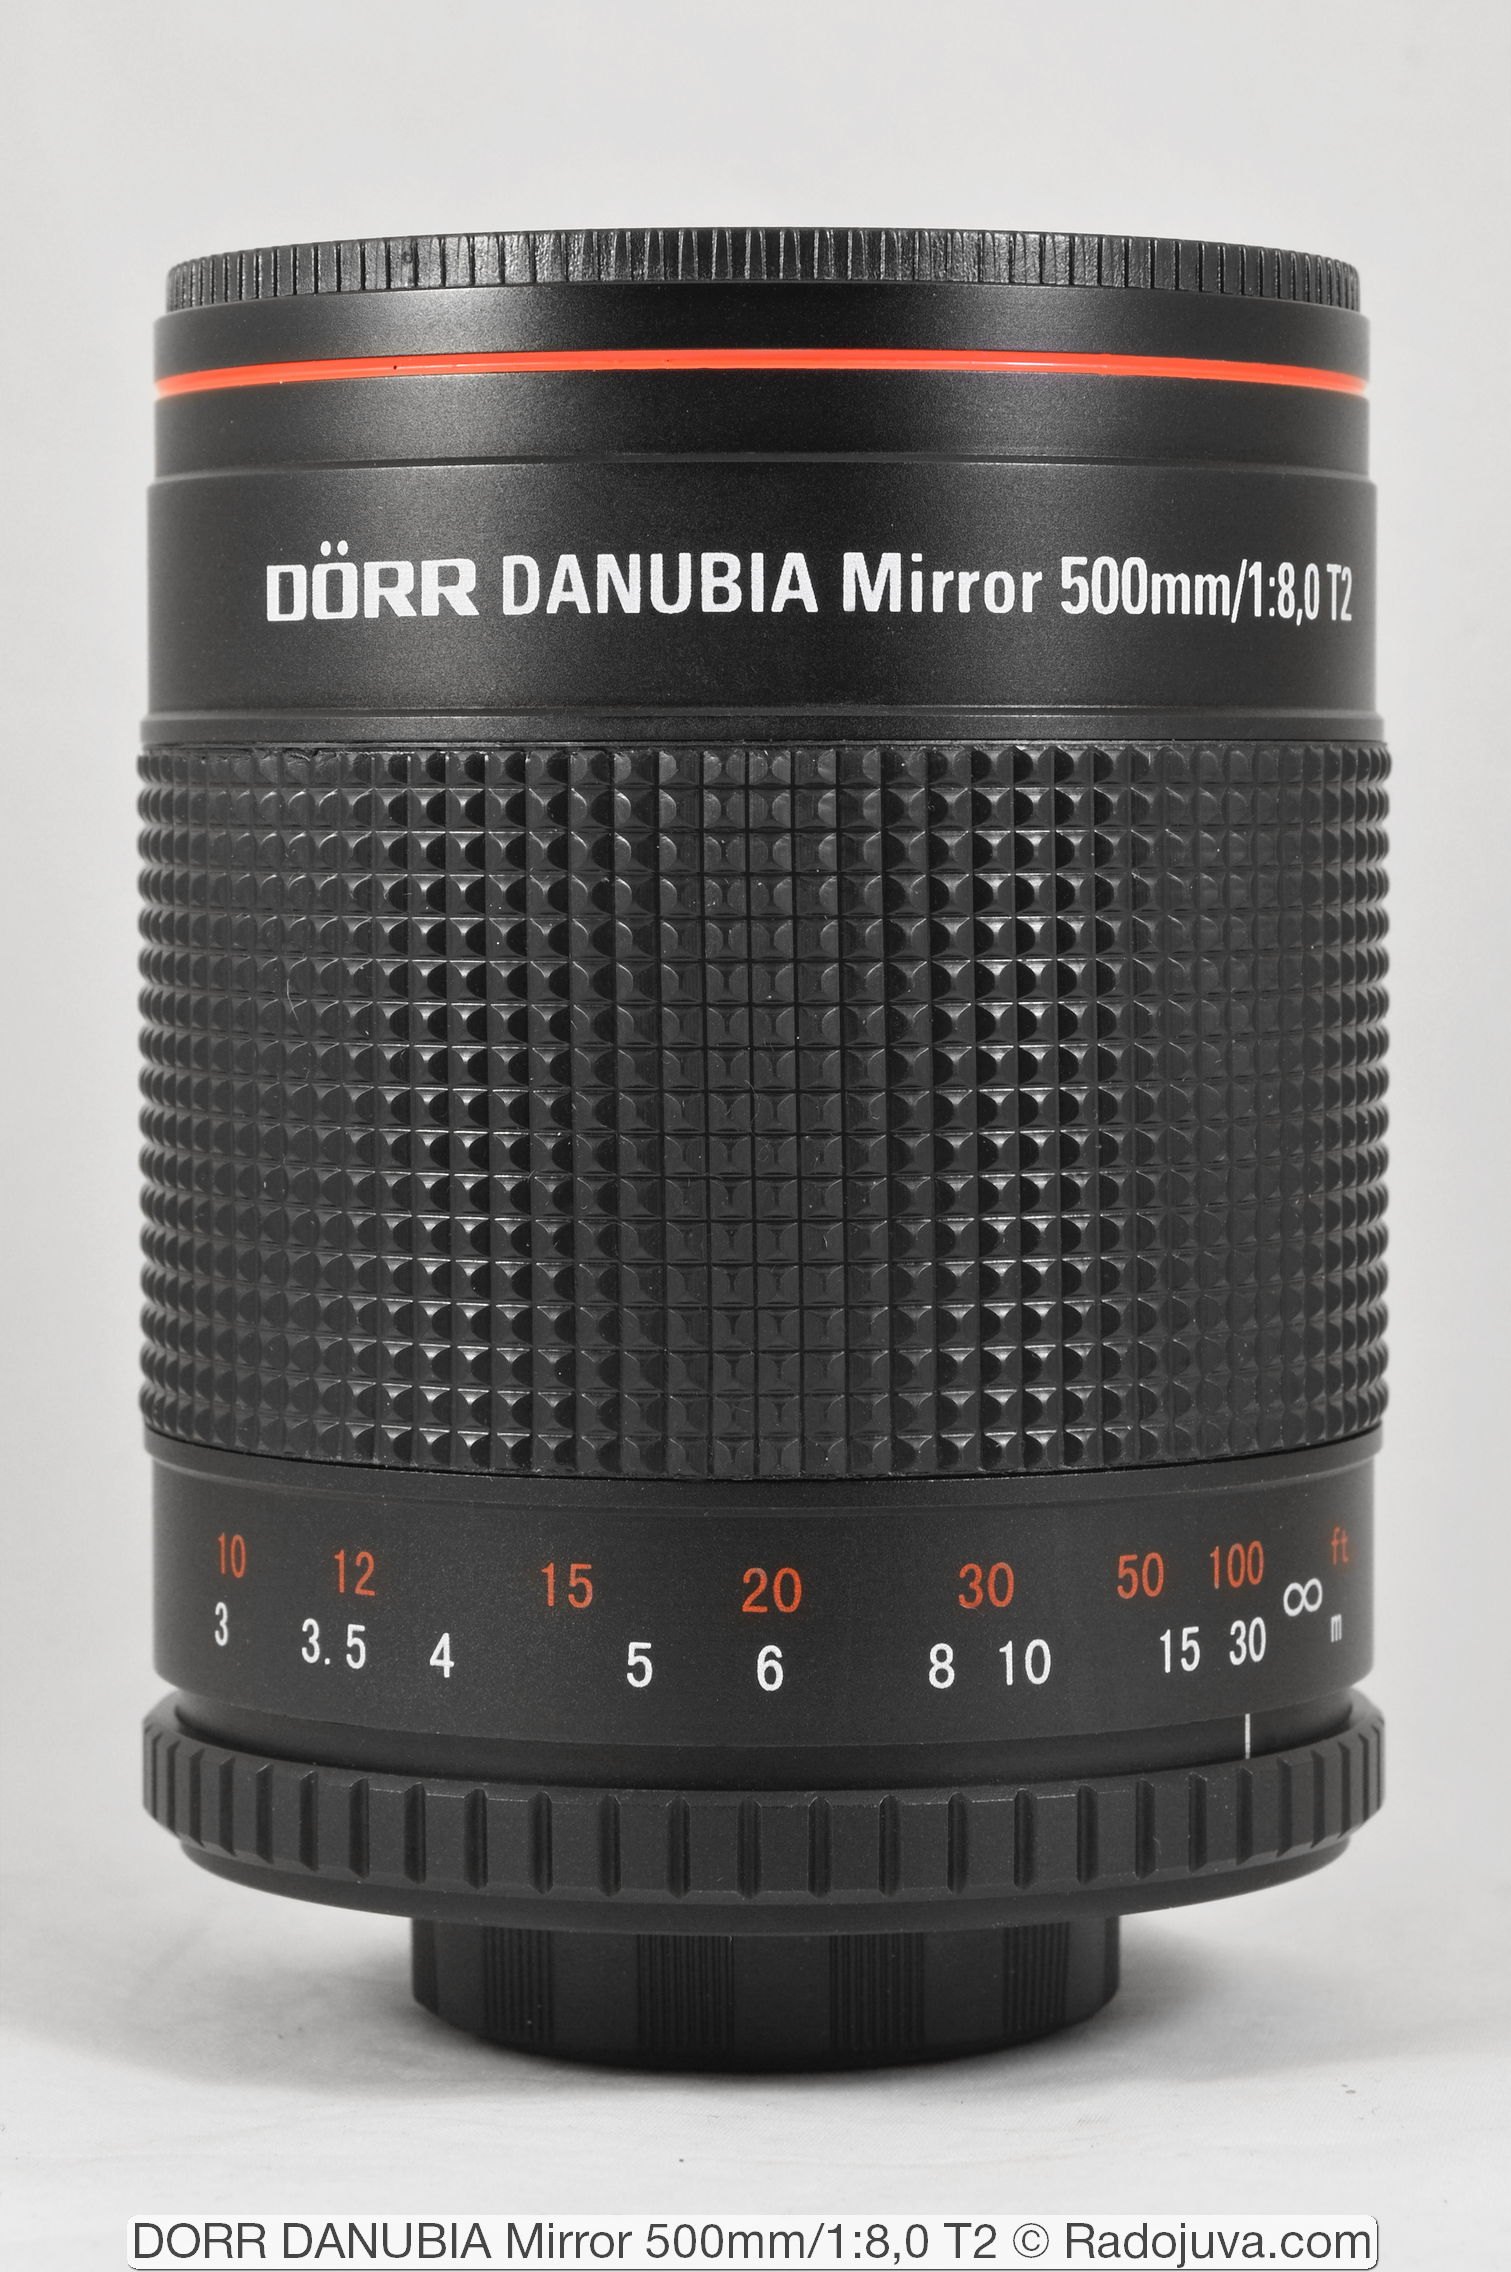 DORR DANUBIA Mirror 500mm F/8 T2